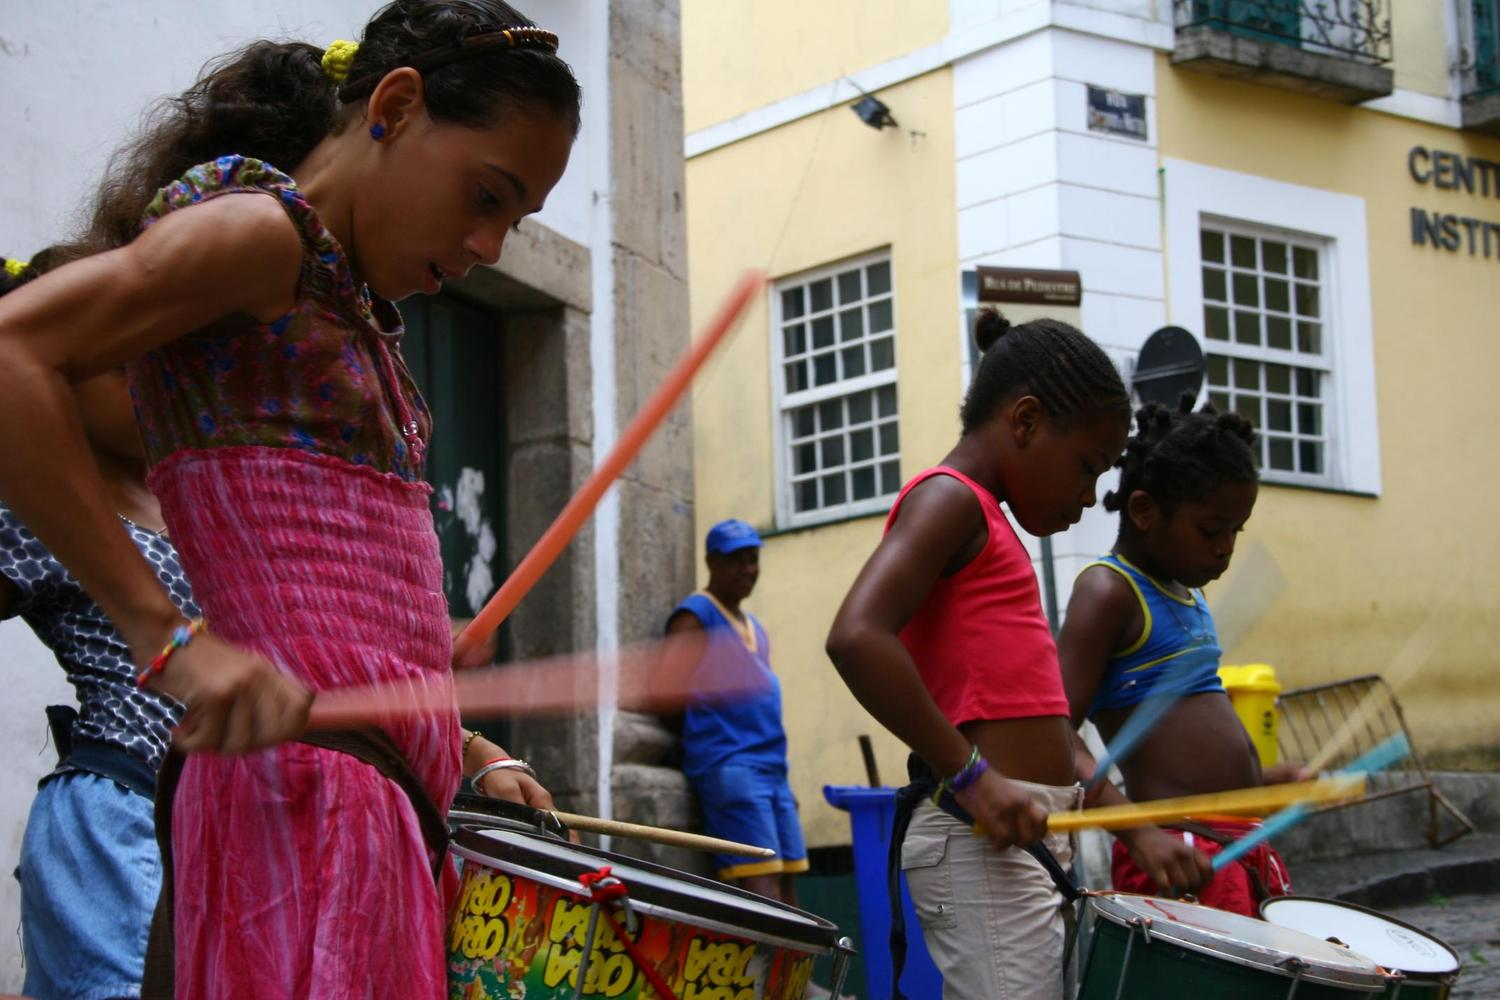 Samba drumming practice in the streets of Salvador's old town